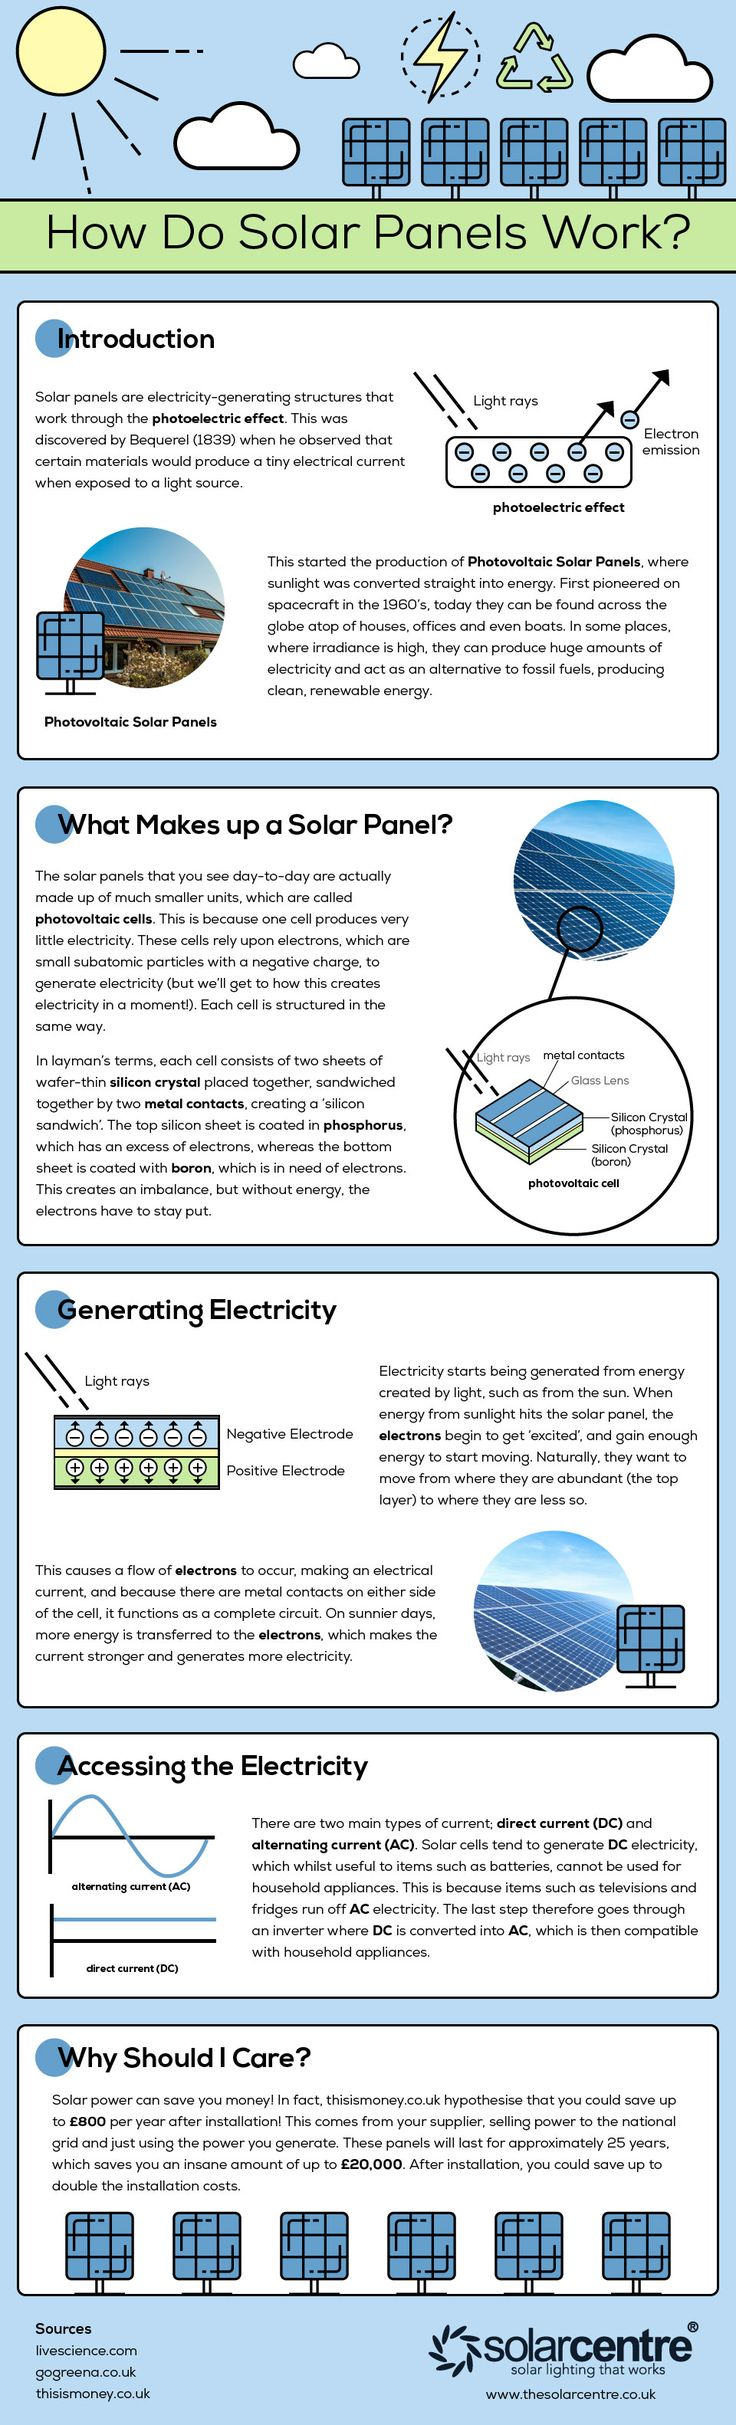 "I typed in ""Solar Energy Farm"". This illustration shows how solar panels work. This would be beneficial in understanding the process and how it could be beneficial on farms. It is linked to an energy related website."